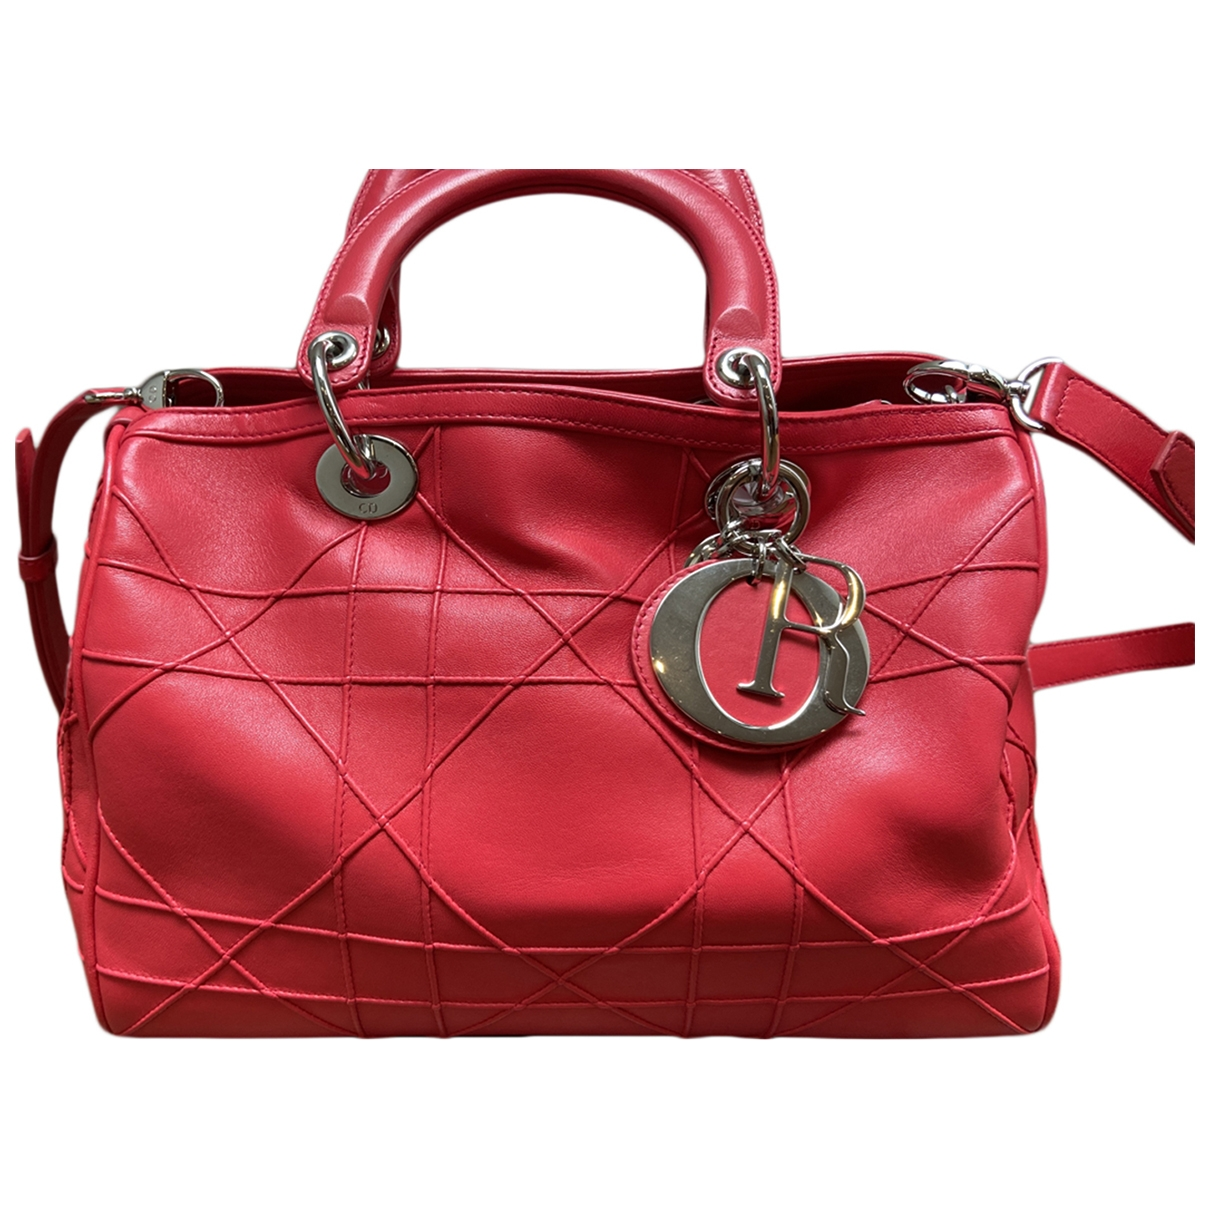 Dior Granville Red Leather handbag for Women \N